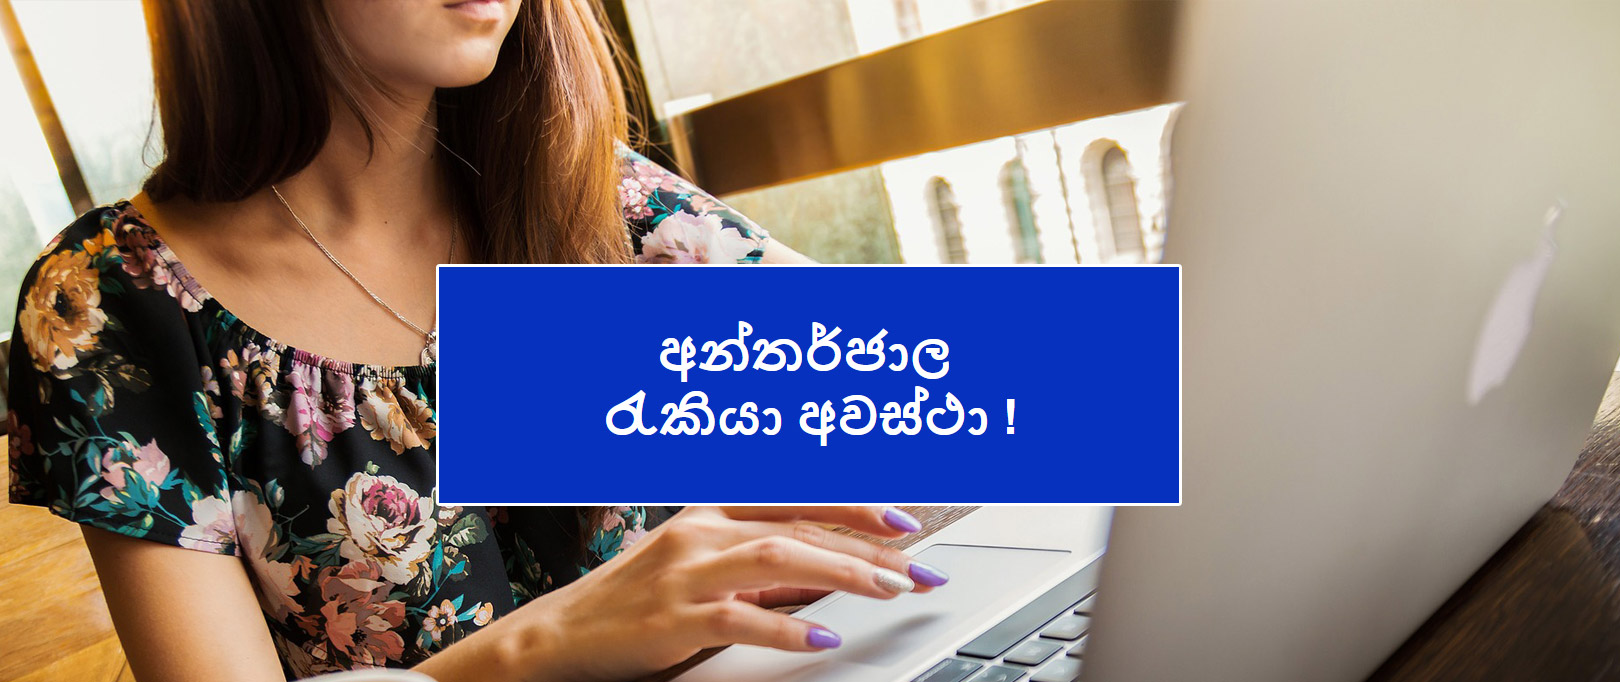 online jobs in Sri Lanka by Prathilaba